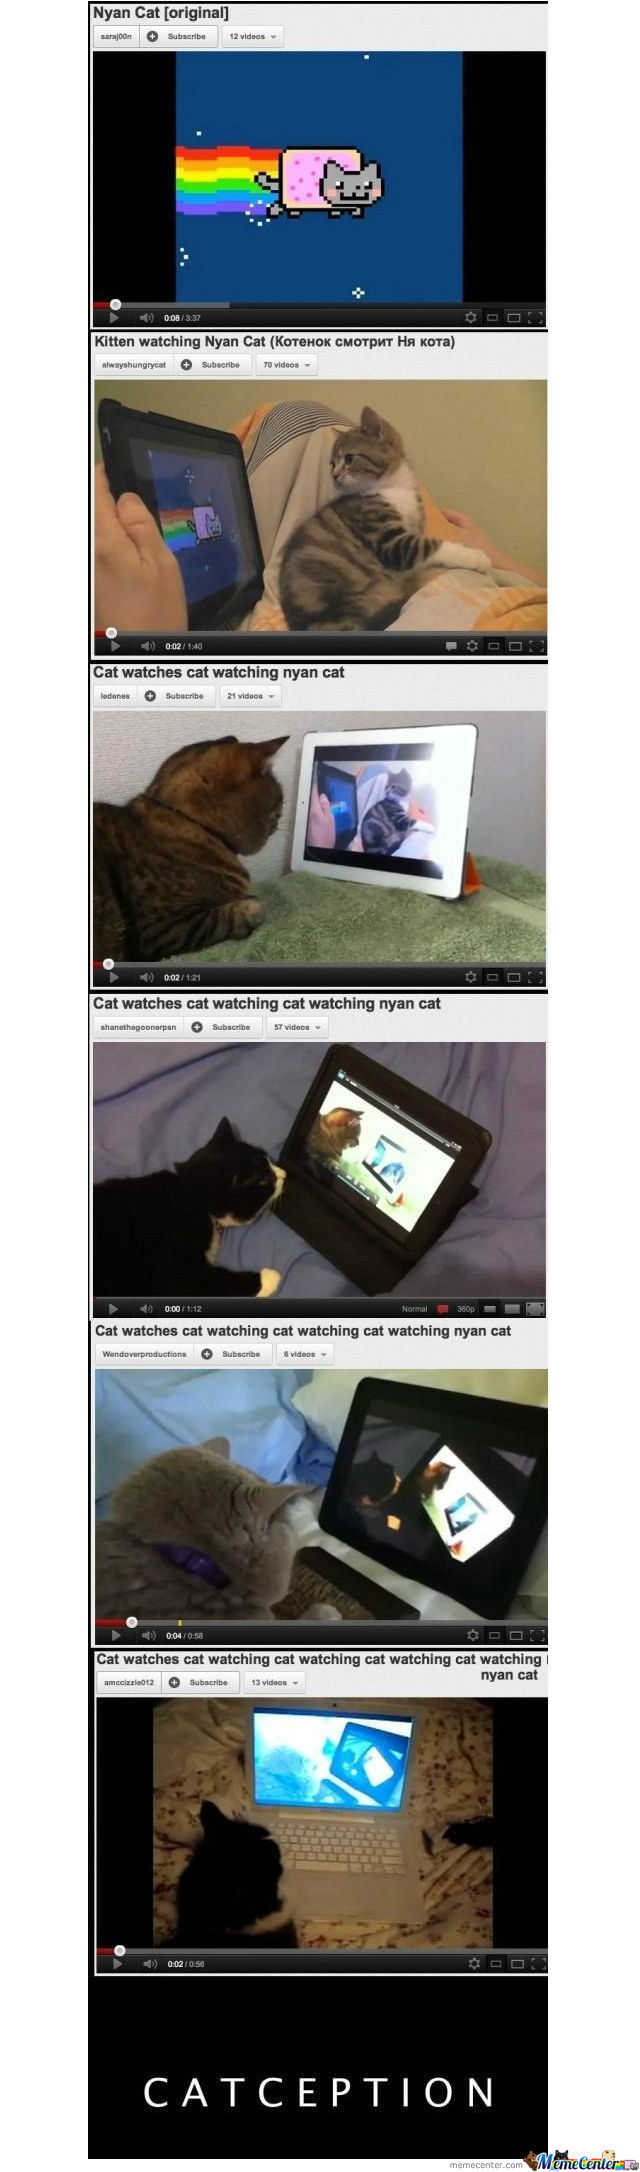 Catception